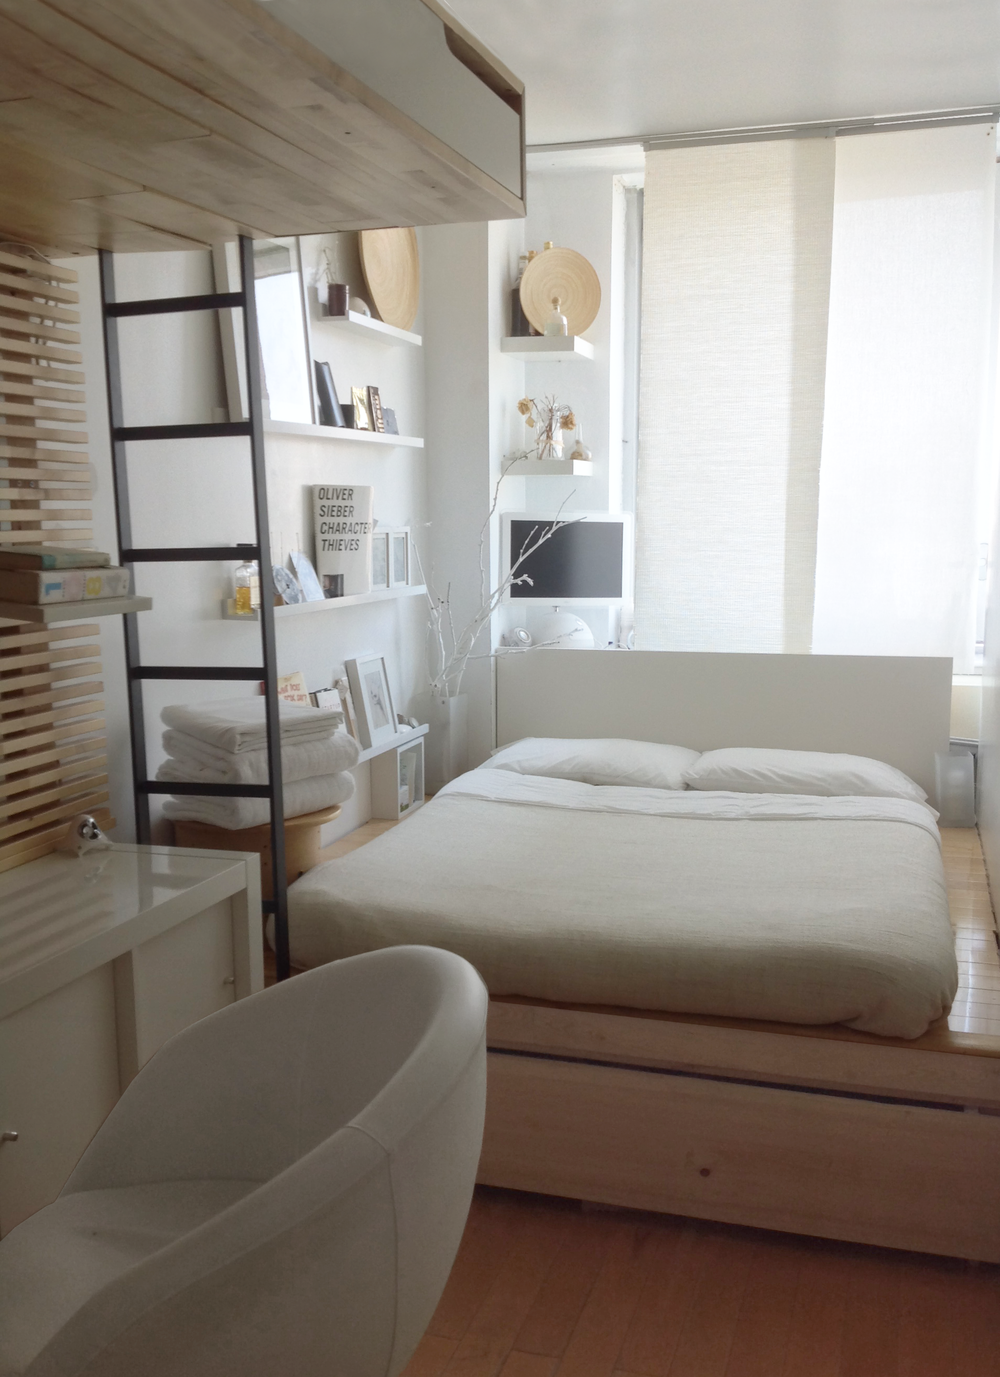 Steve I-Lin Chung - Apartment Therapy - The Big Reveal - Muji Inspired Room